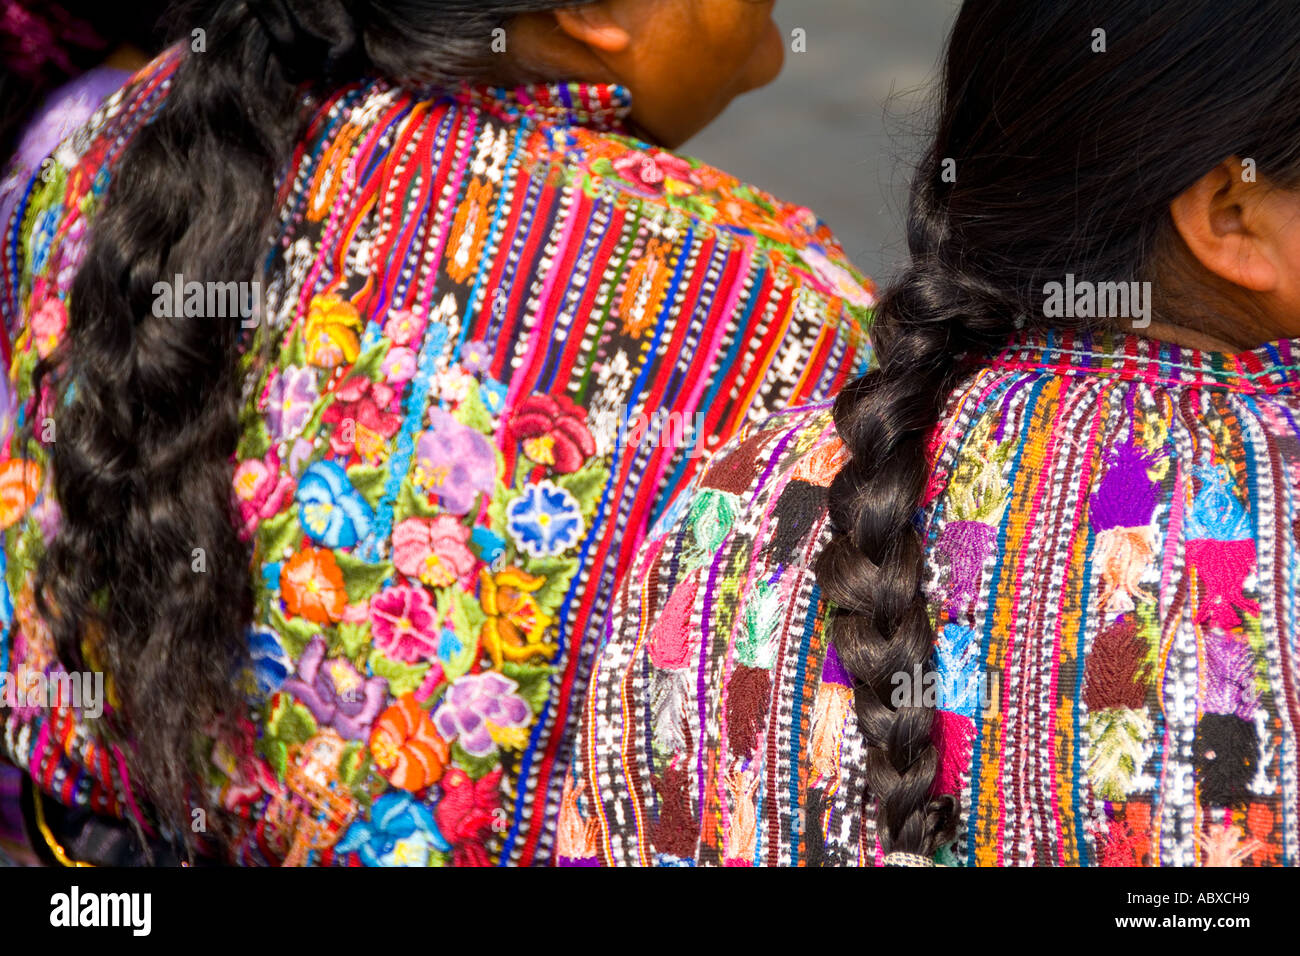 Colorful Print Patterned Clothes Of The Women In Famous Market Day Color Highlands Village Solola Guatemala